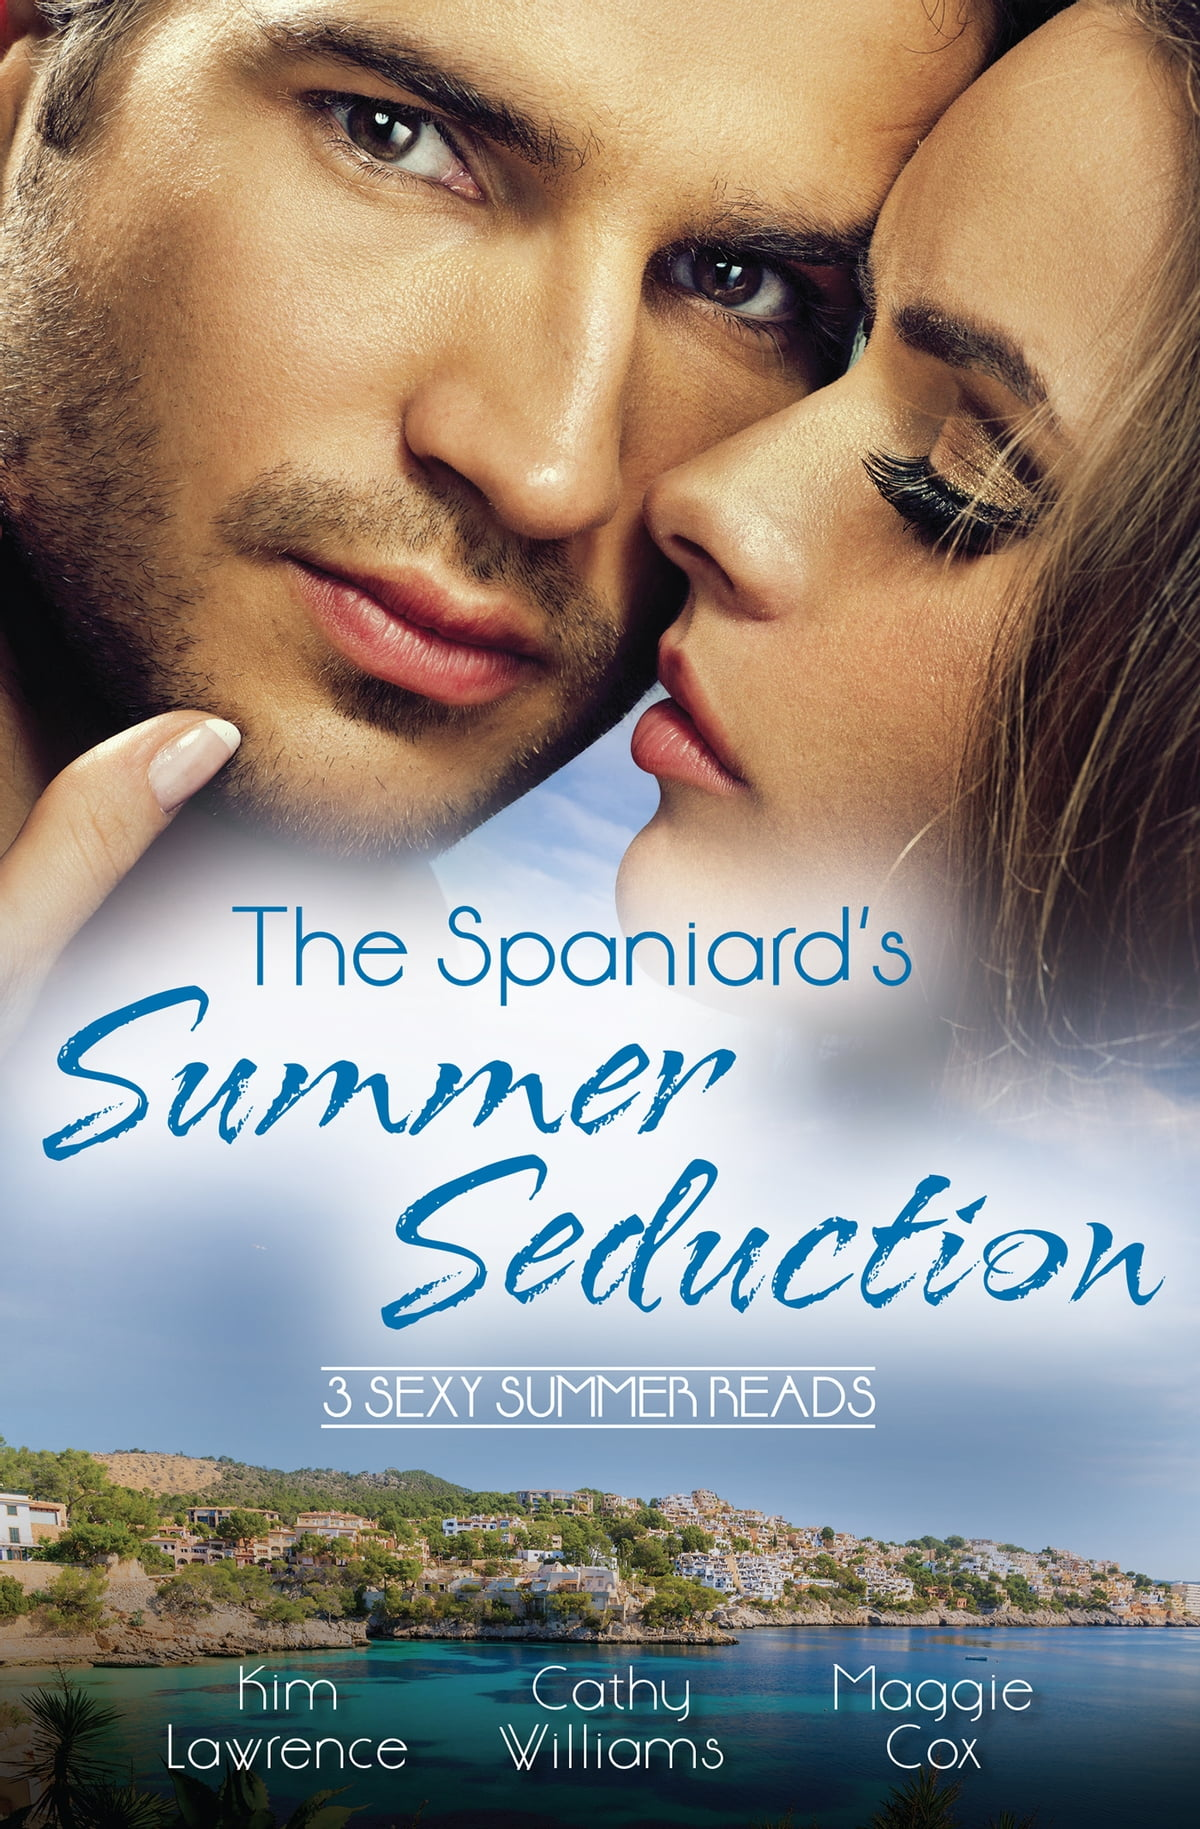 The Spaniard's Summer Seduction